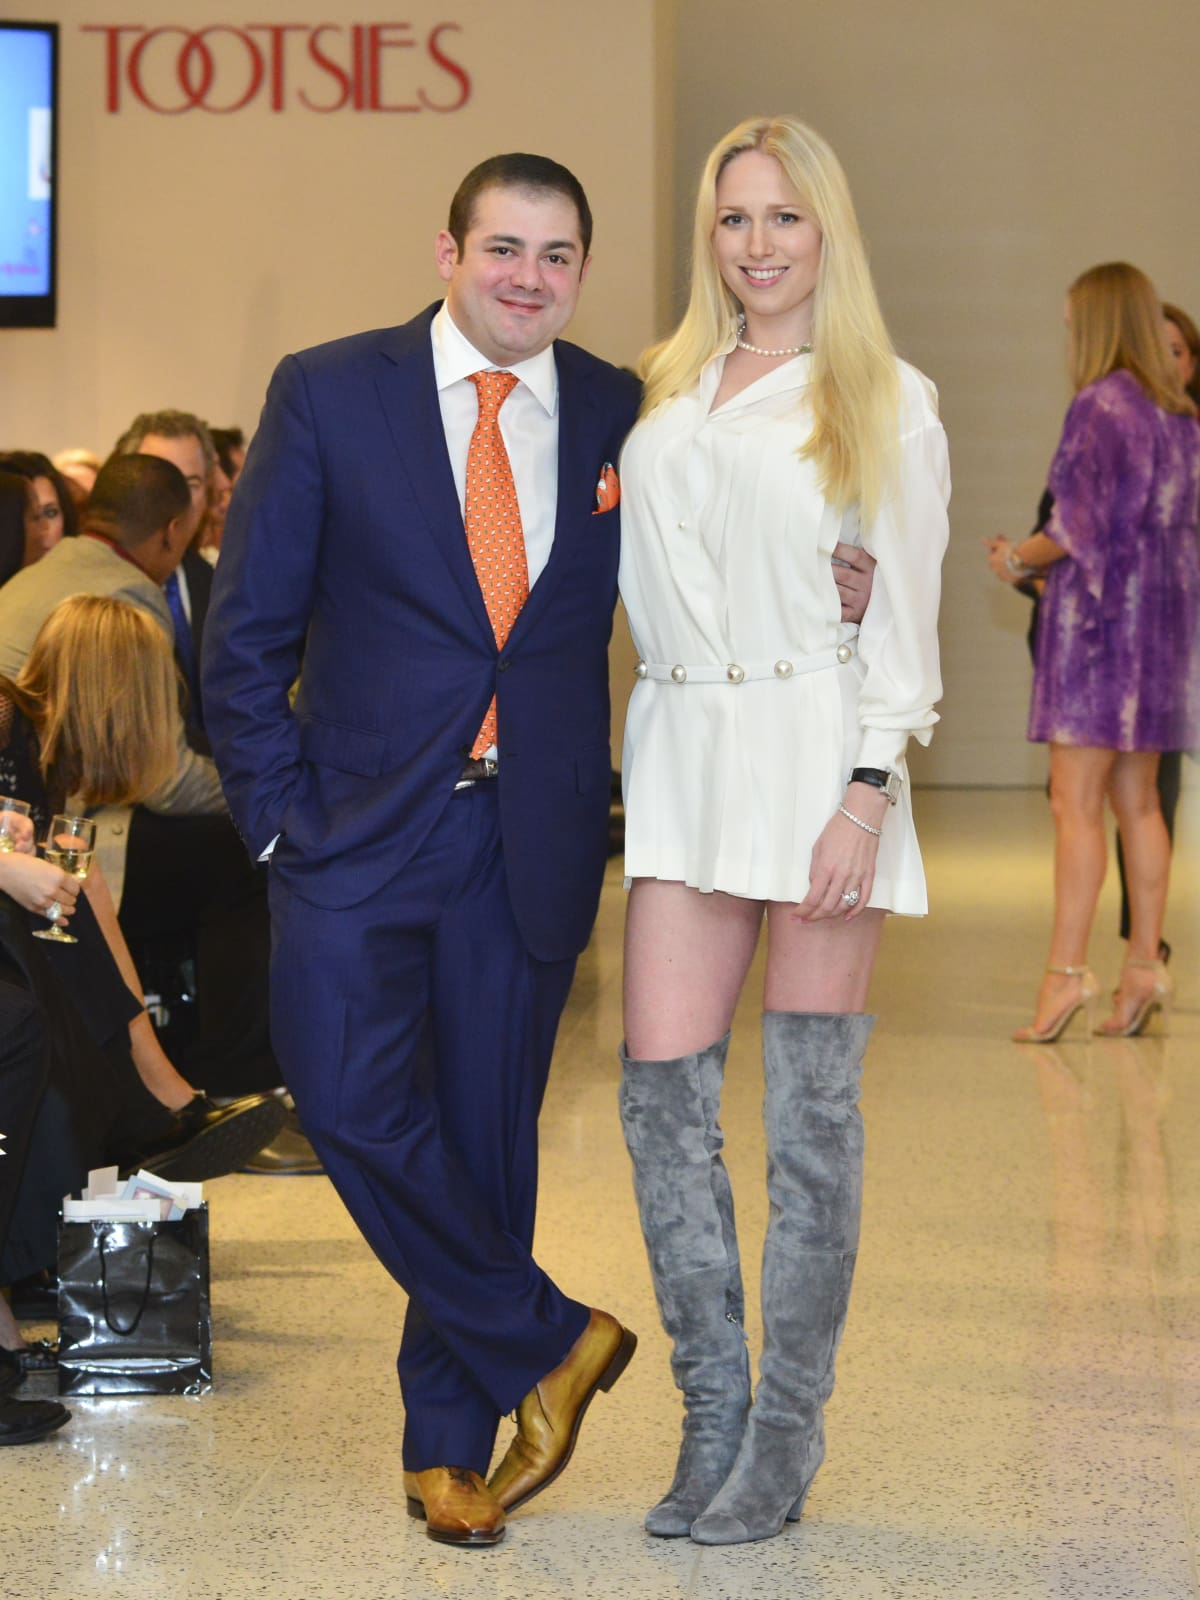 16 Phillip Sarofim and Lori Krohn at the Dec My Room Fashion Show February 2014